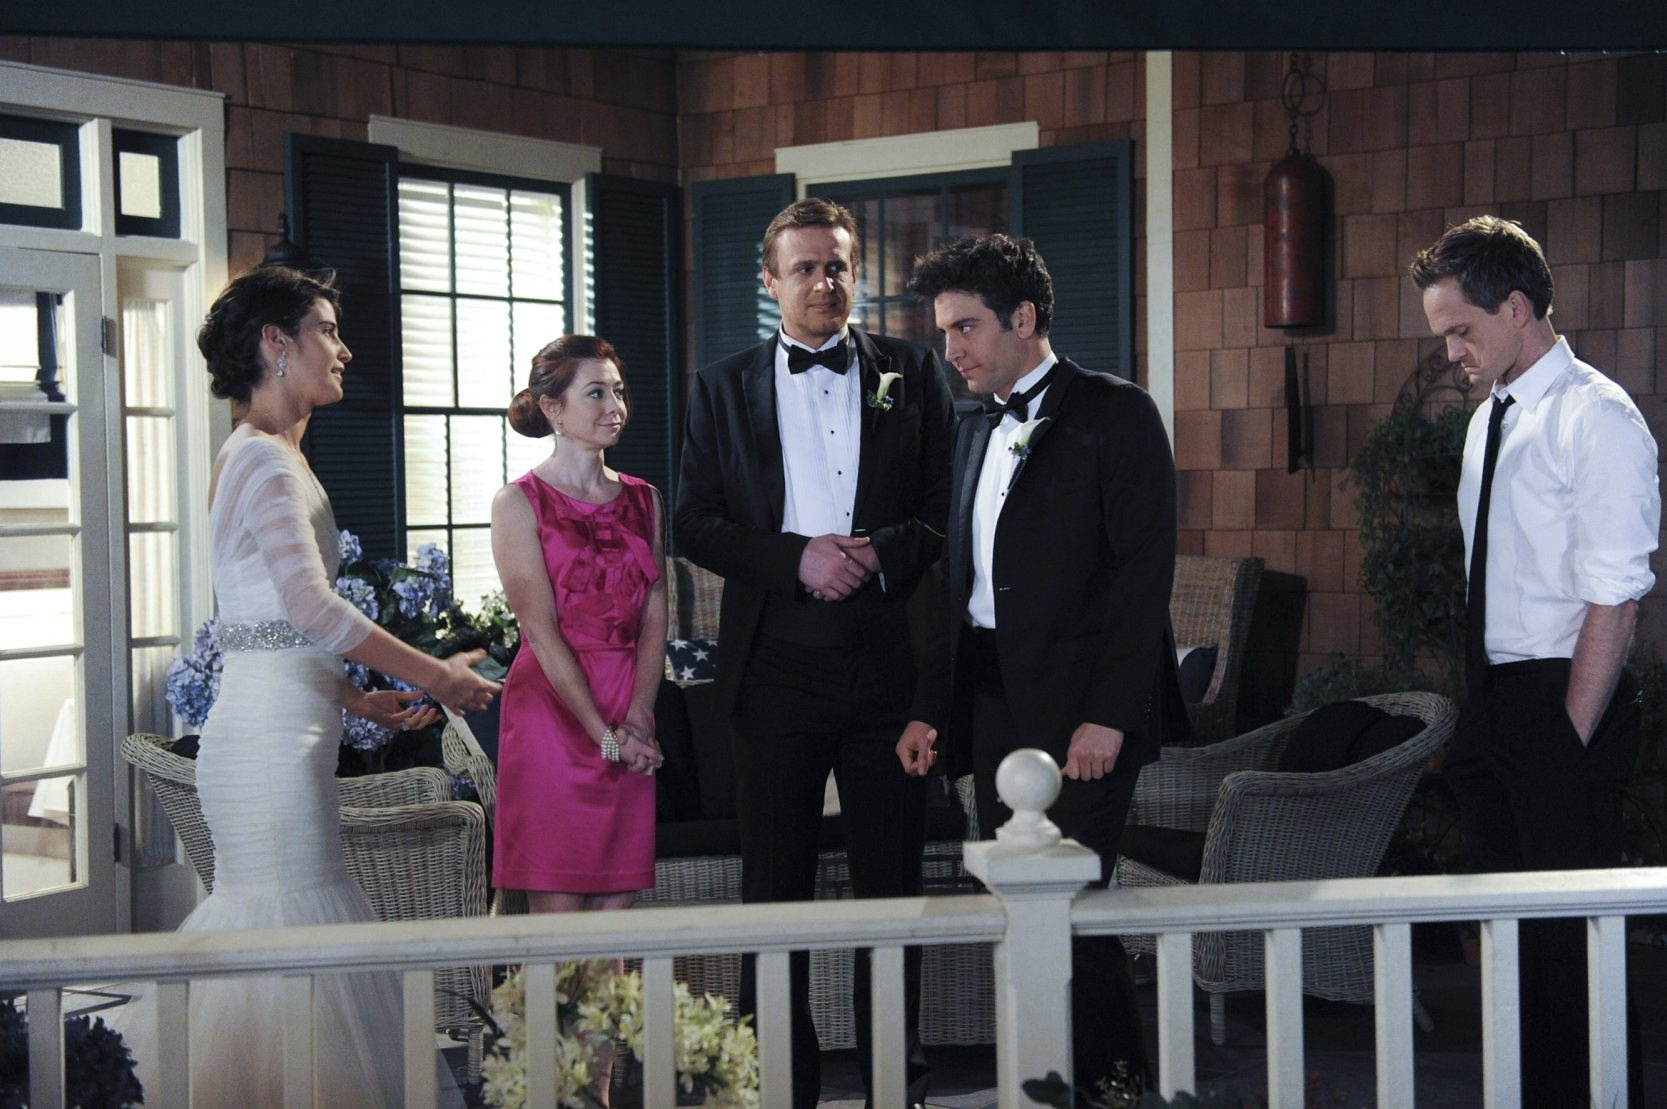 """From left, Josh Radnor as Ted, Cobie Smulders as Robin, Jason Segel as Marshall, Alyson Hannigan as Lily and Neil Patrick Harris as Barney in a from """"How I Met Your Mother."""" The series' ending earlier this year disappointed many viewers."""